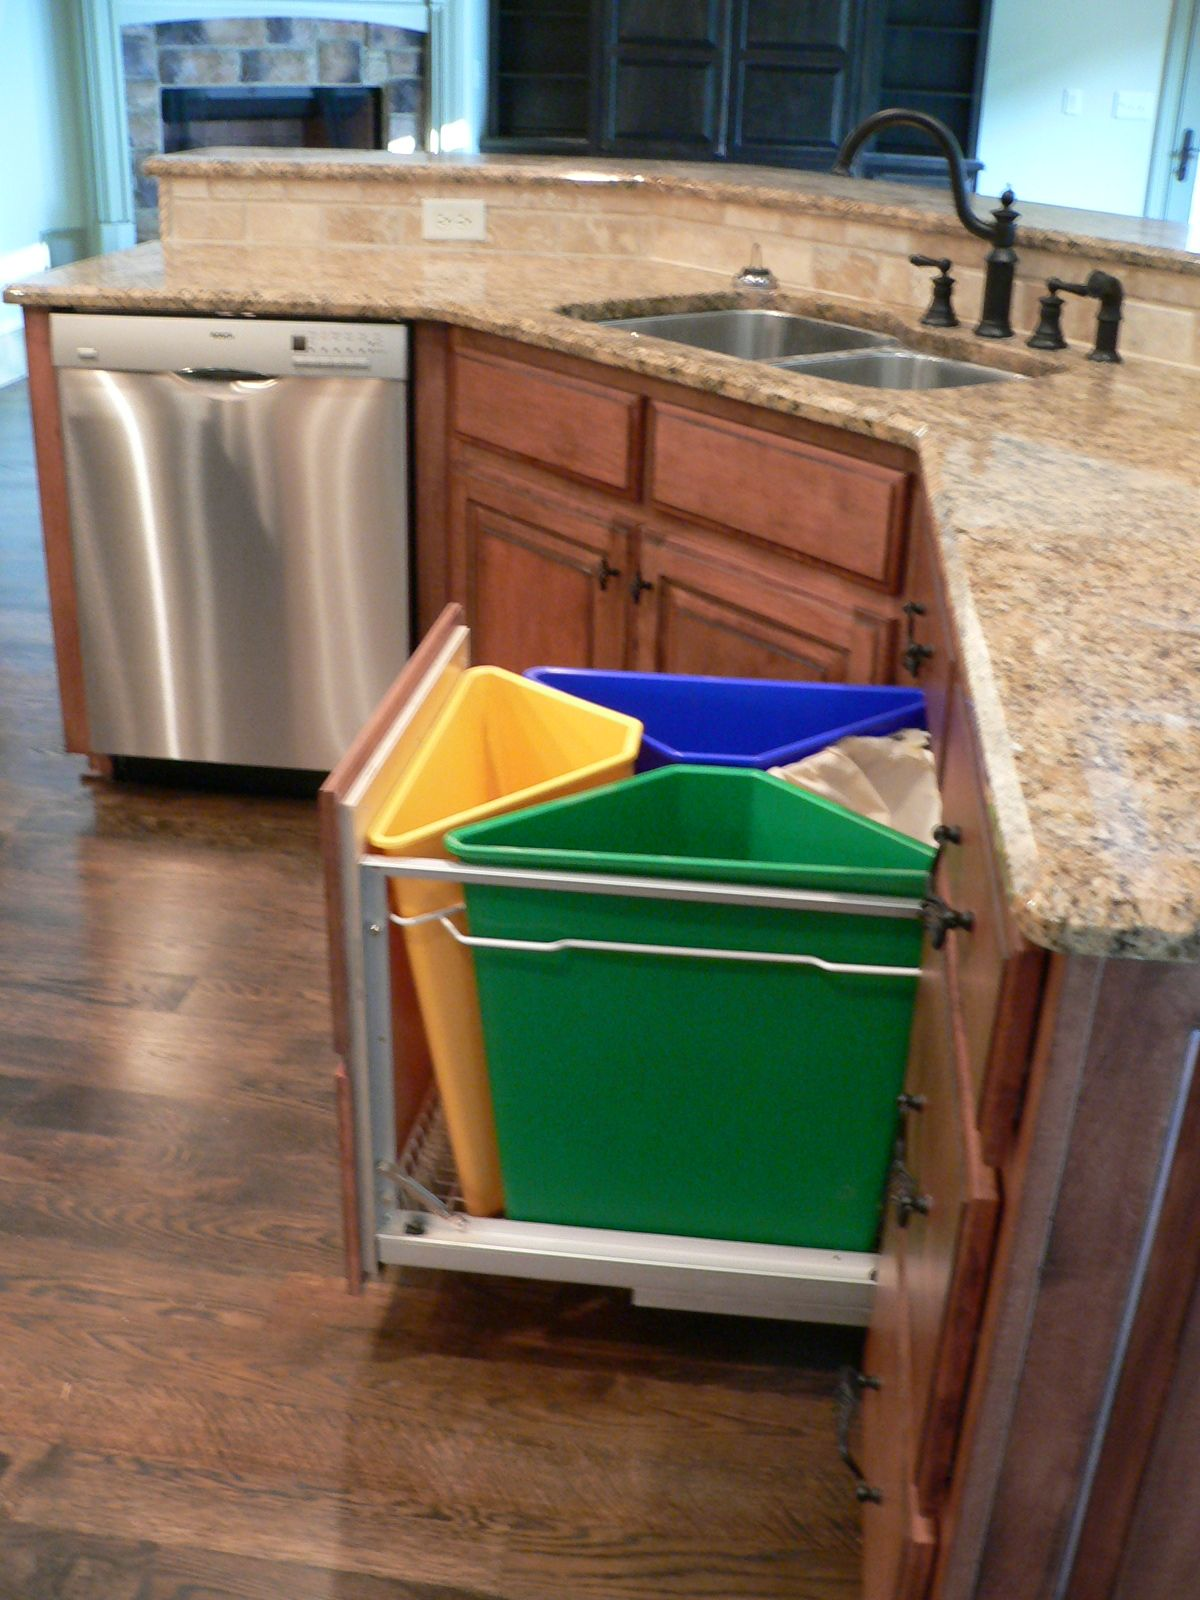 Kitchen Trash Compactor Over The Sink Lighting Recycling System For Home Pinterest